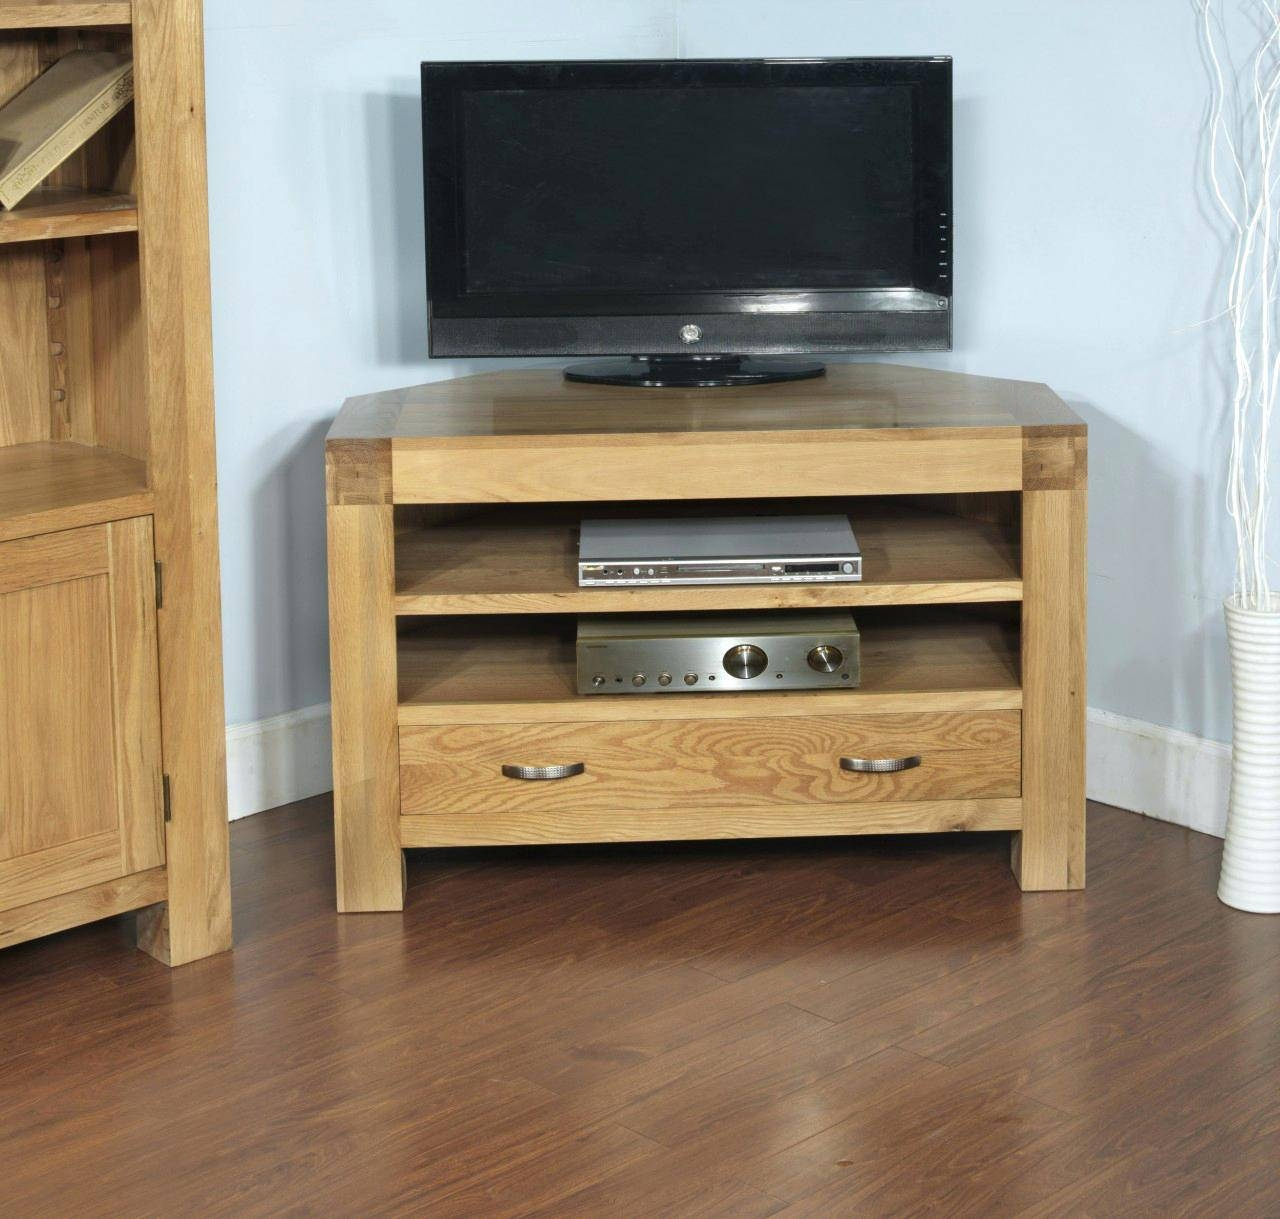 Tv Stand : Small Corner Tv Stands For Flat Screens Uk Bright Wood for Corner Tv Stands With Drawers (Image 14 of 15)